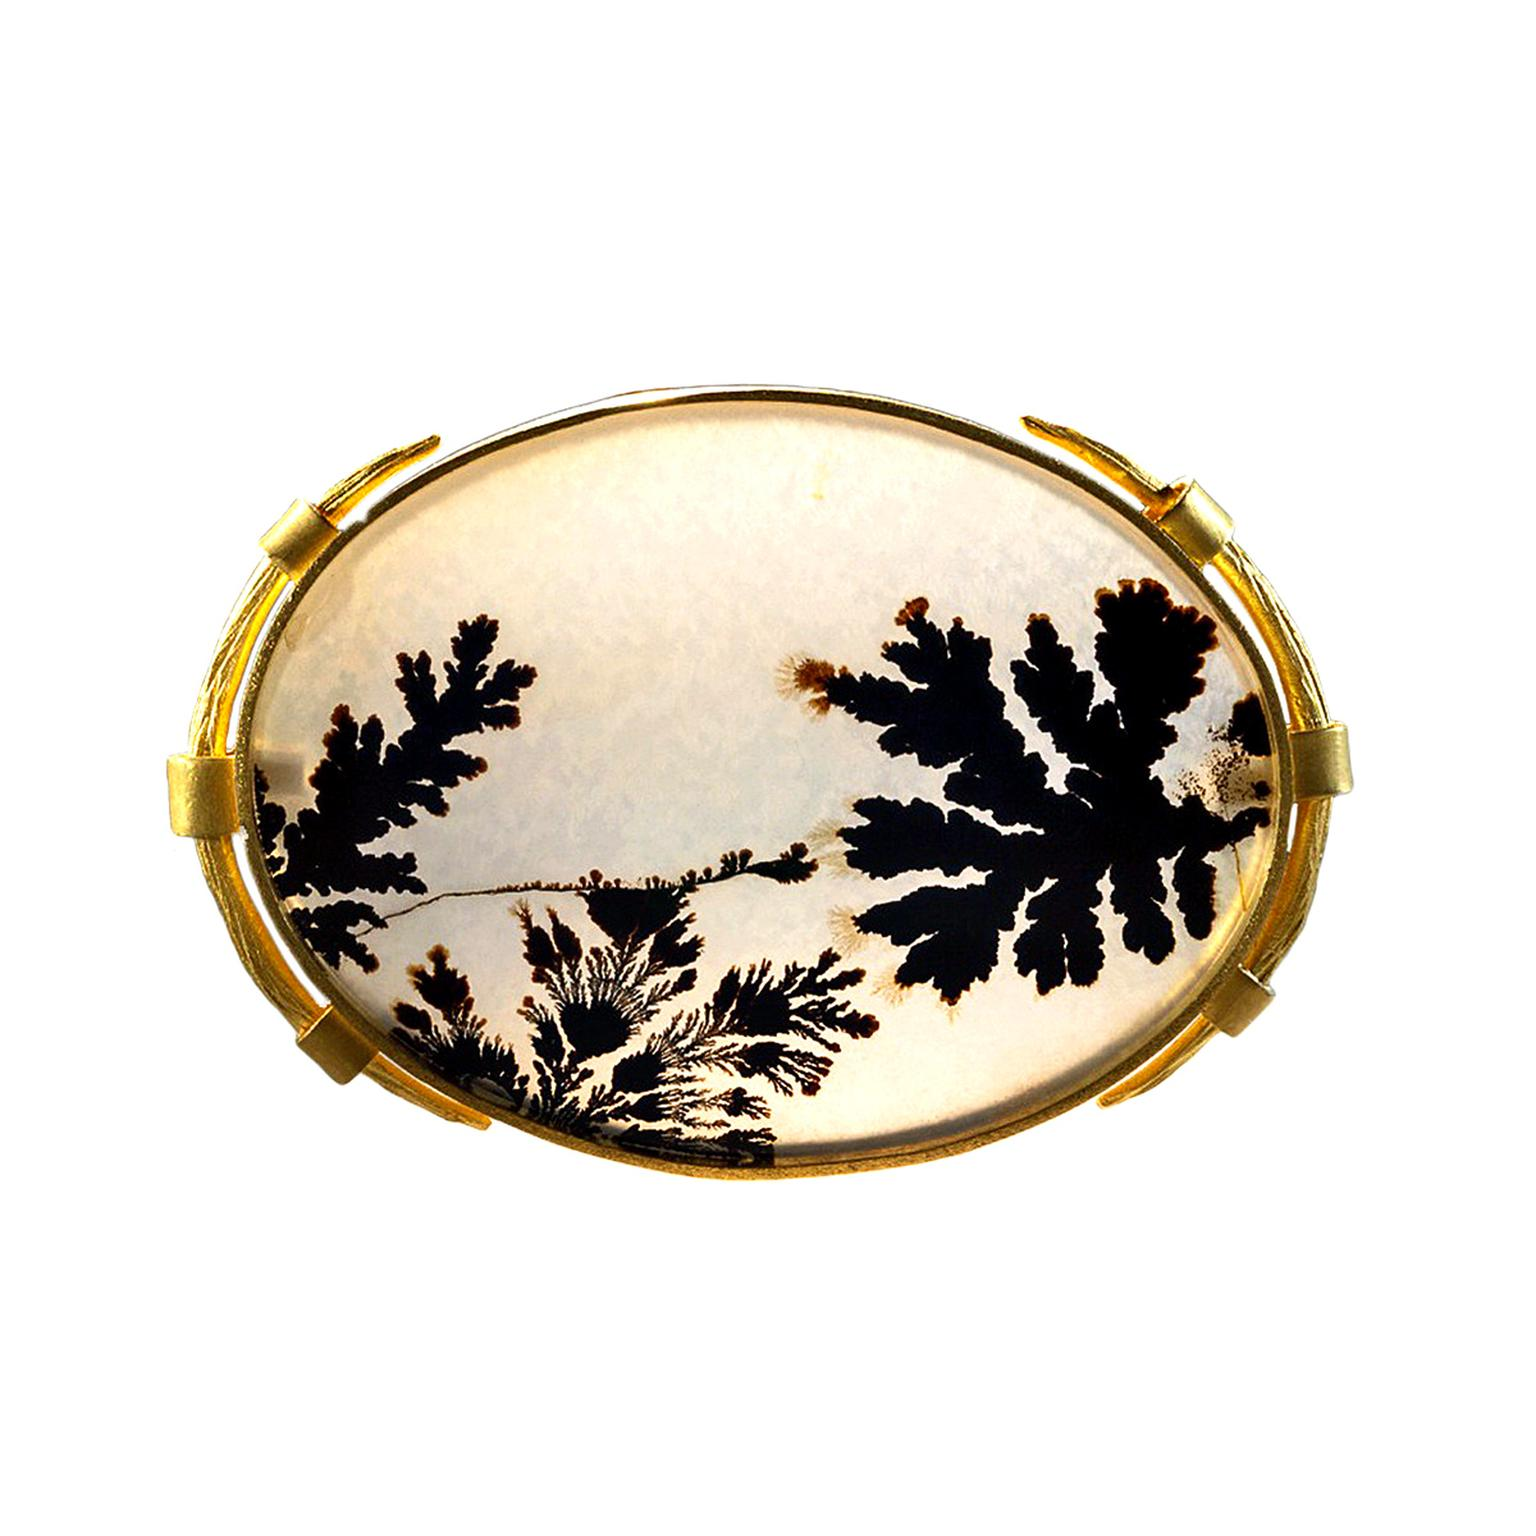 Lilly Fitzgerald dendritic agate brooch